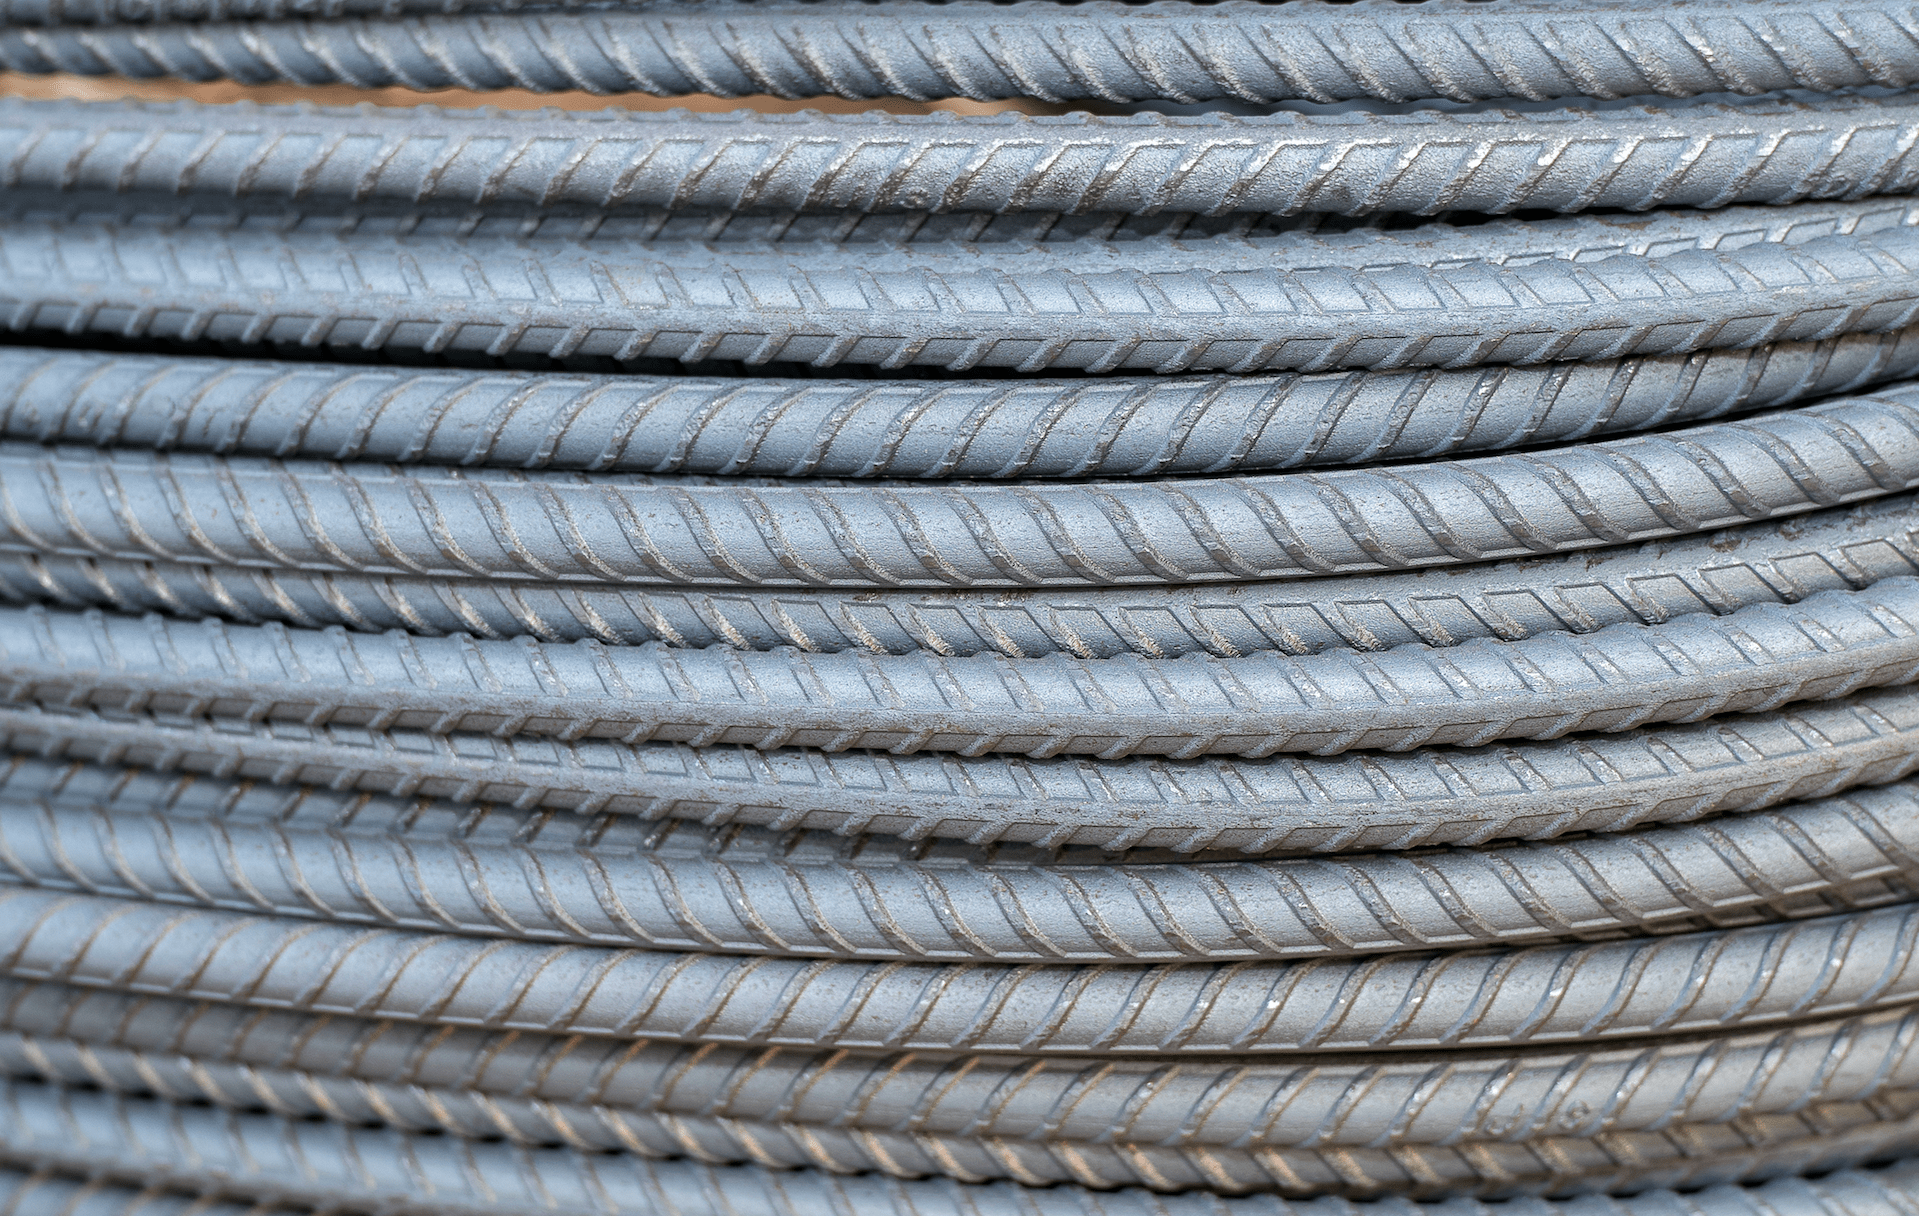 What are the different types of rebar?